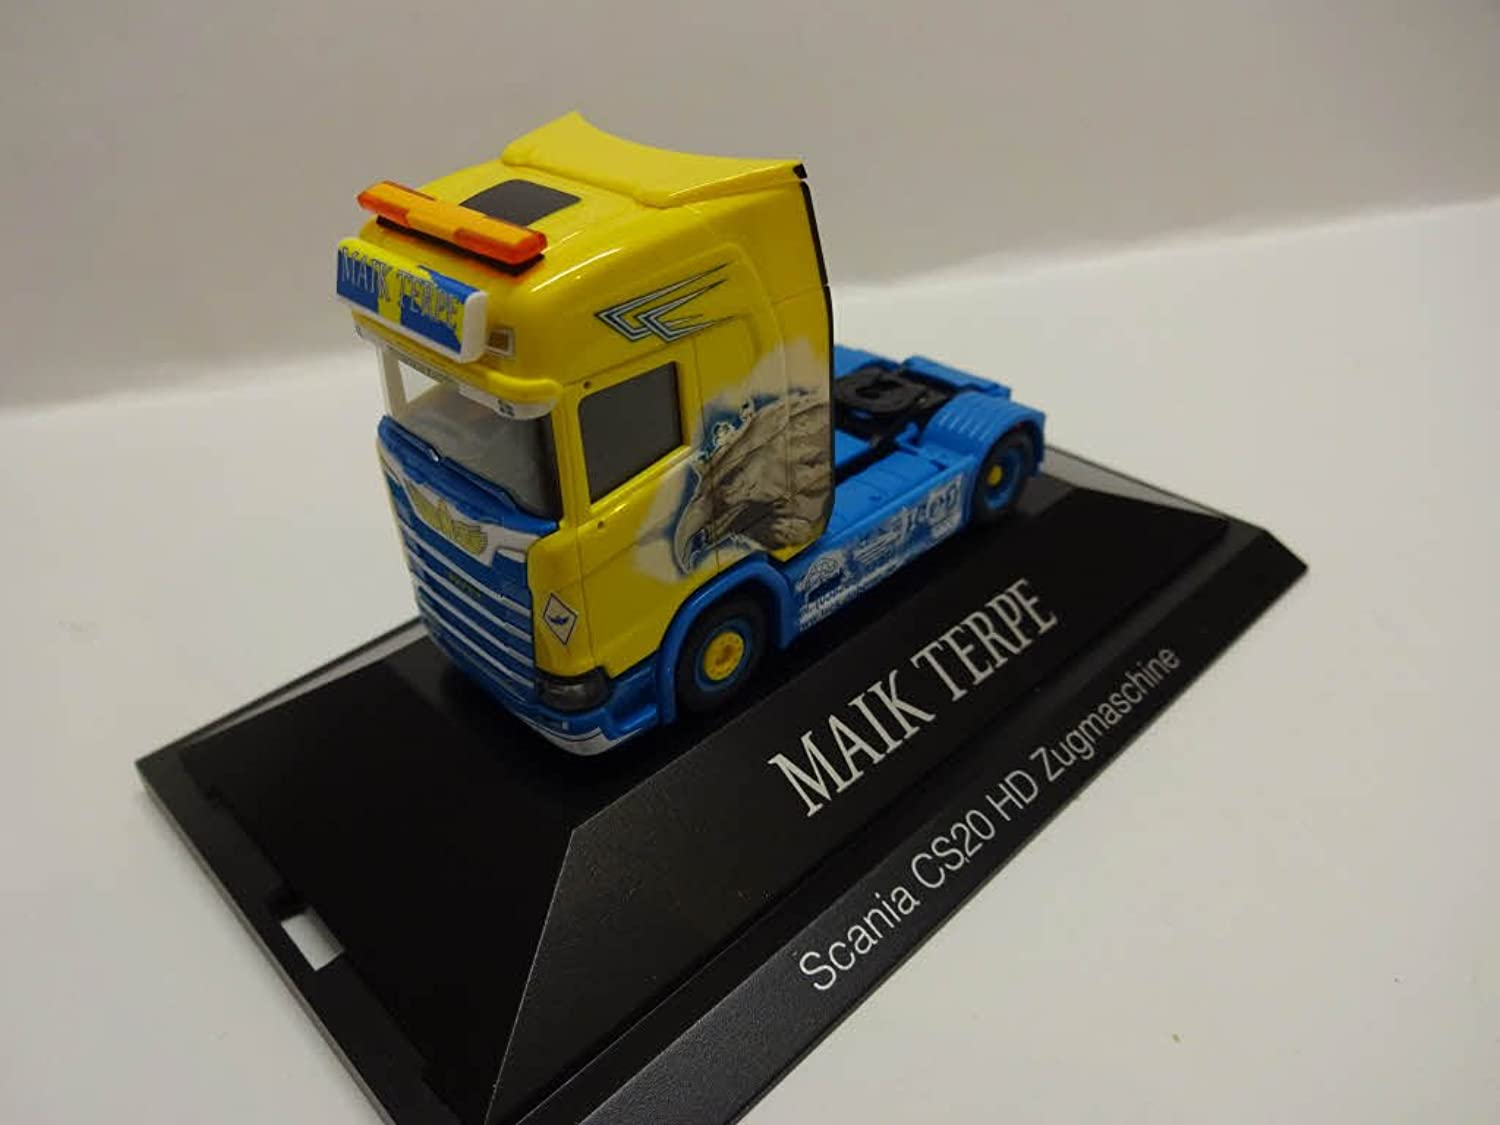 Herpa 110914  Scania Cs 20 Hd Rigid Tractor Maik Terpe Model Set